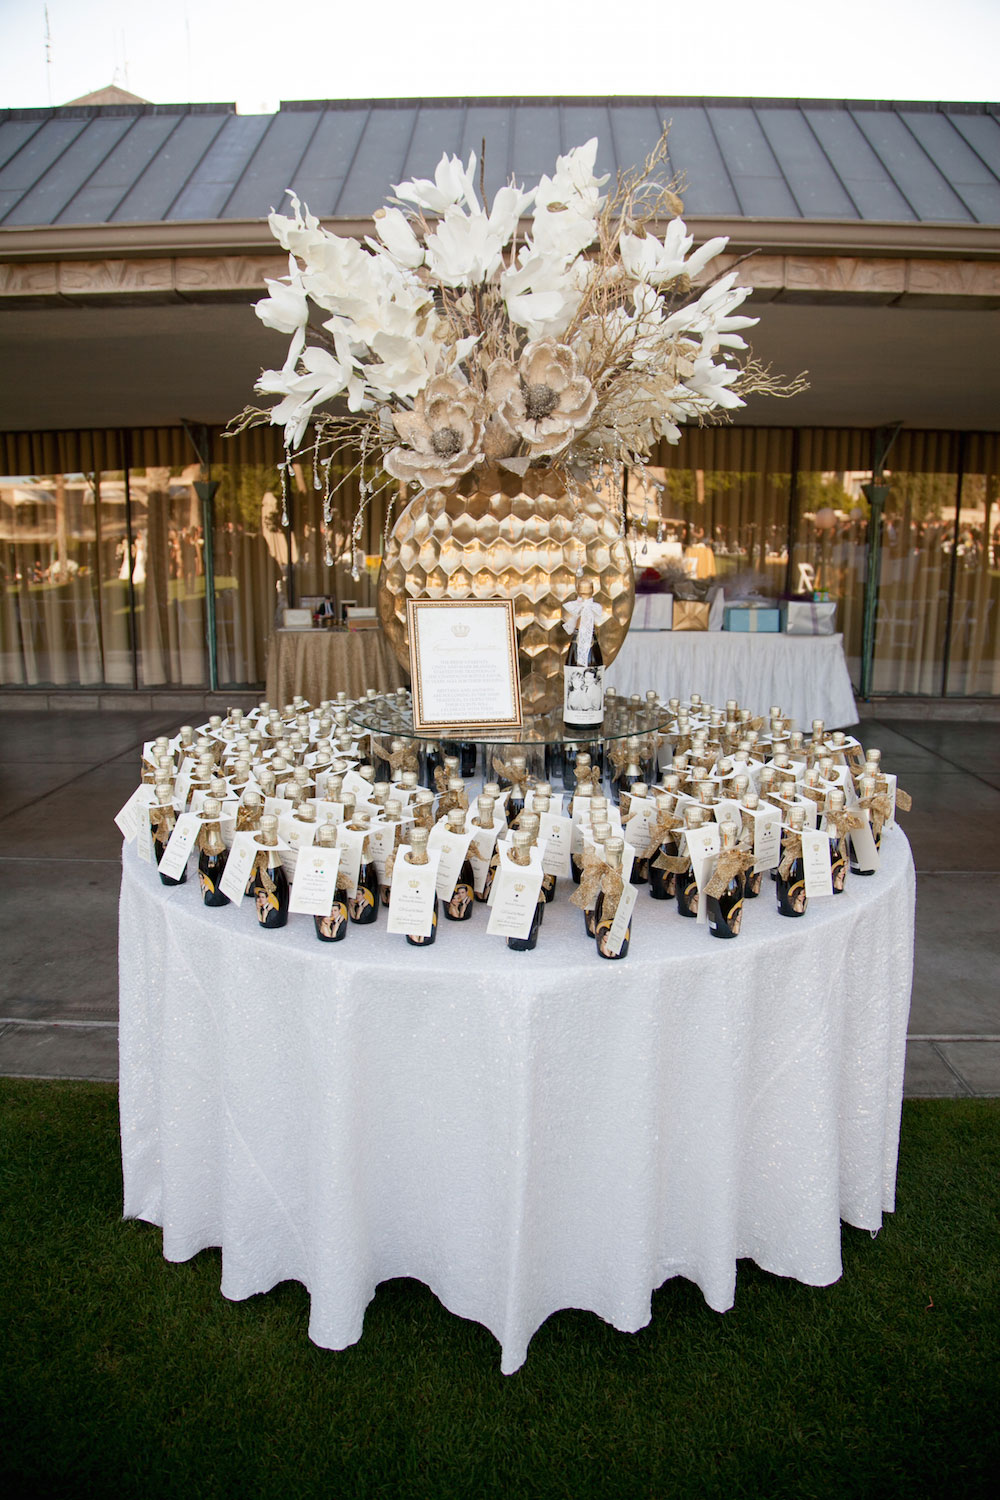 Miniature bottles of champagne for wedding favors